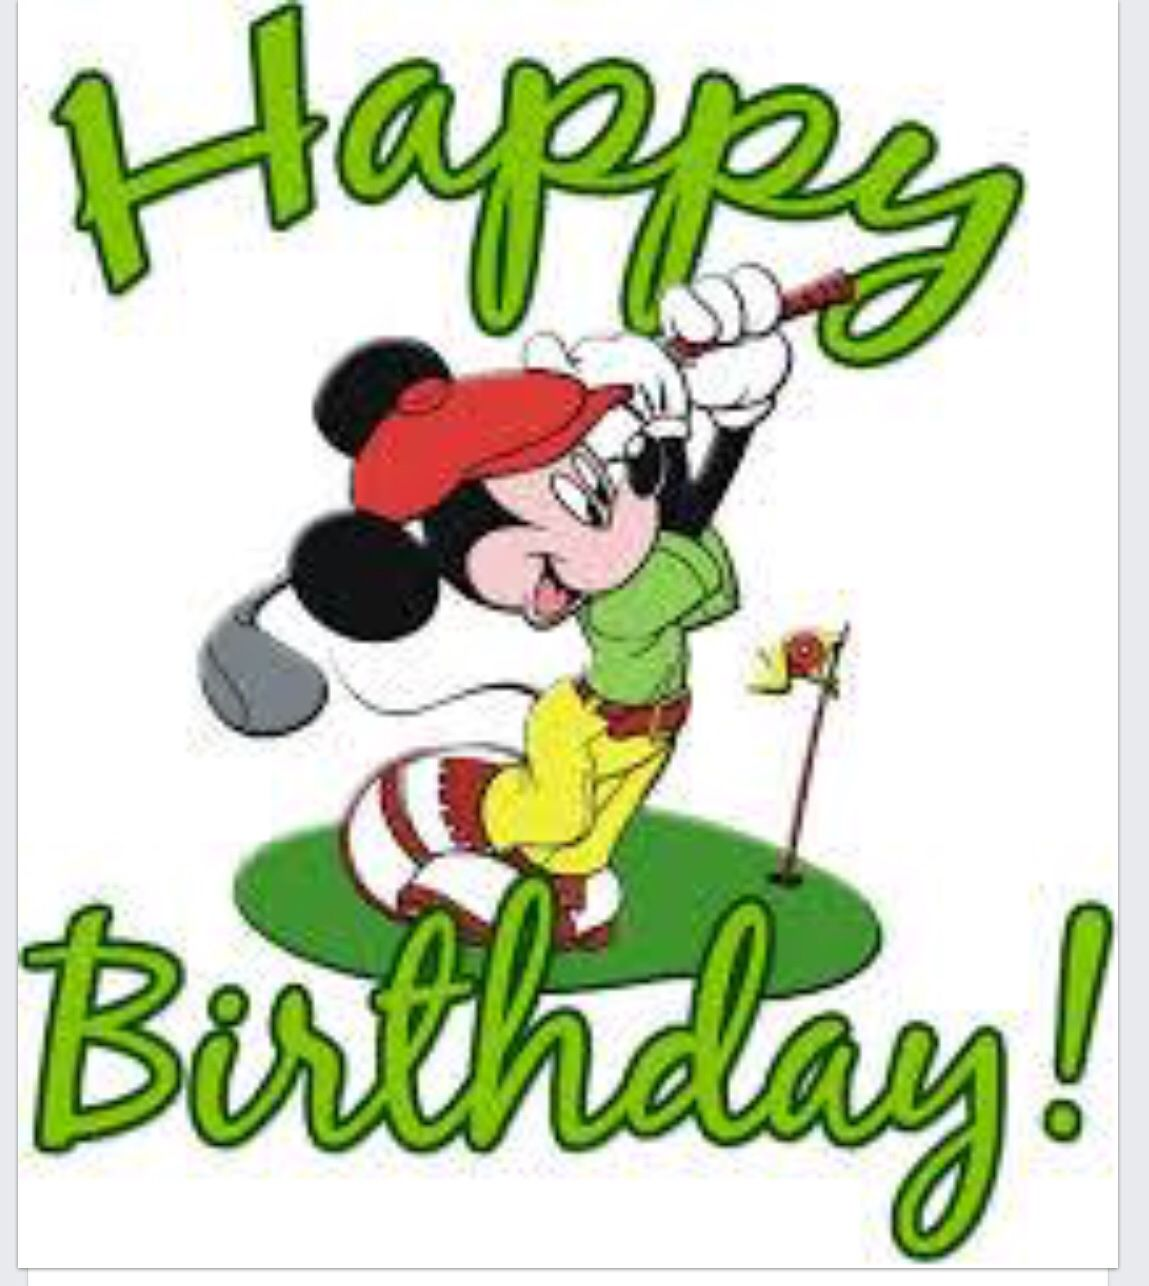 Pin by Grammie Newman on Birthday Pinterest Birthdays Happy